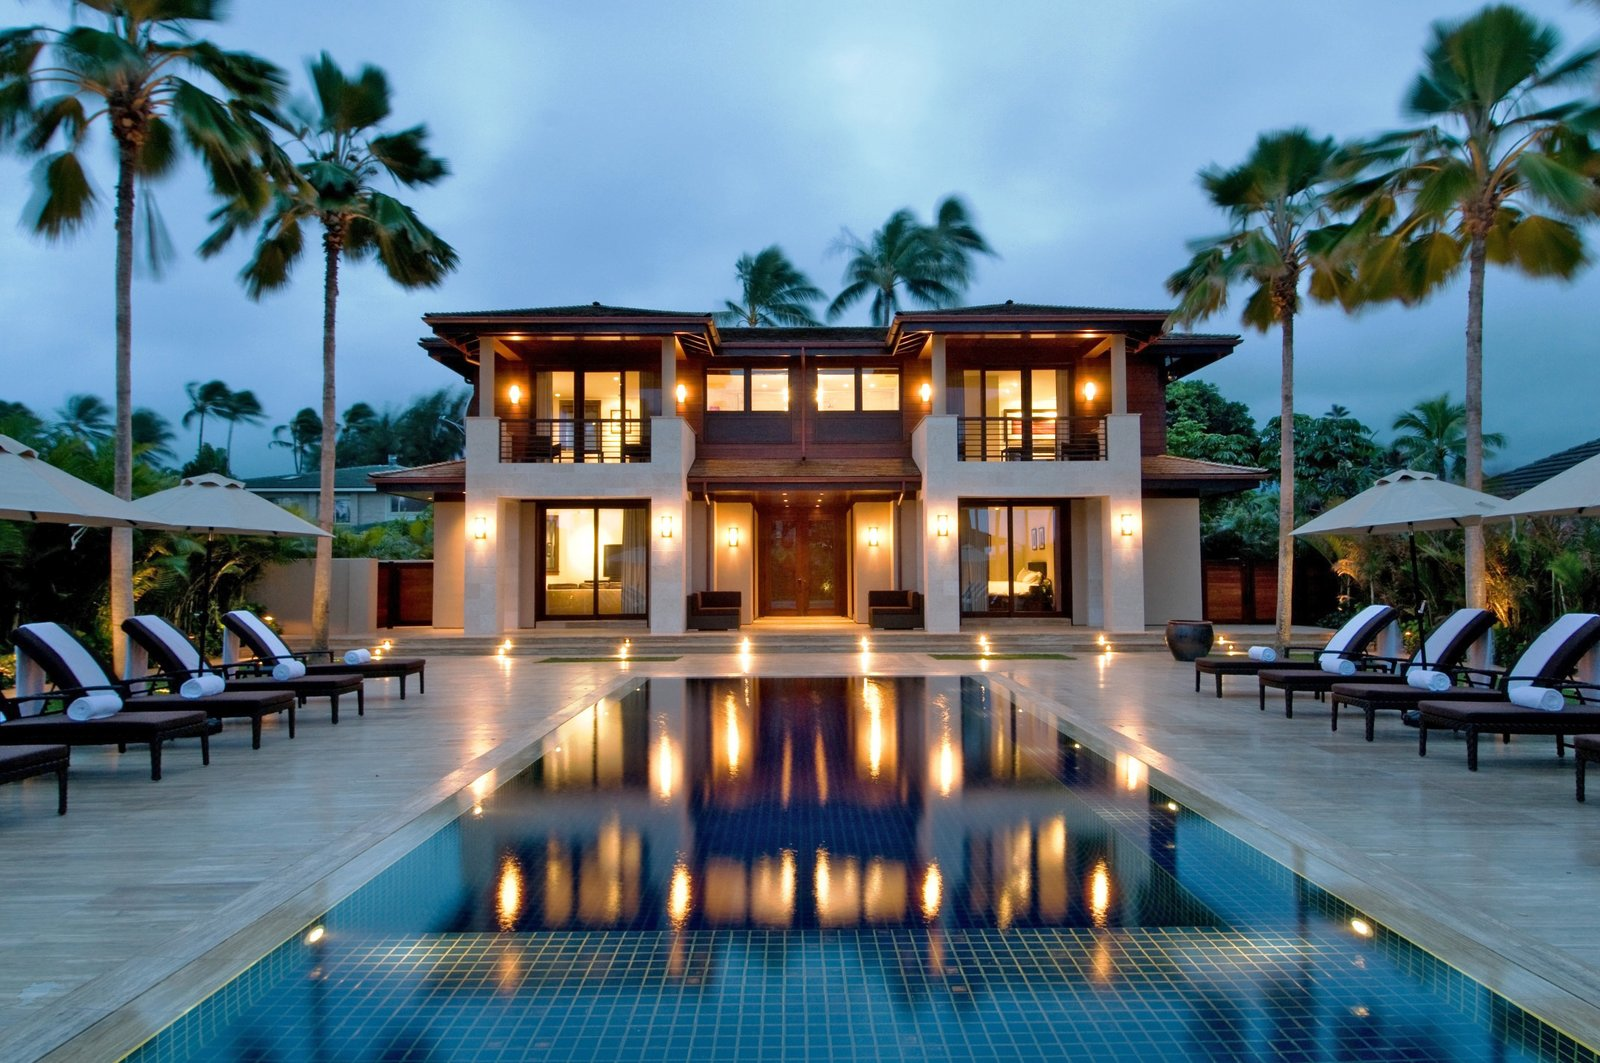 Photo 1 of 10 in 10 Dream Modern Home Rentals In Hawaii - Dwell